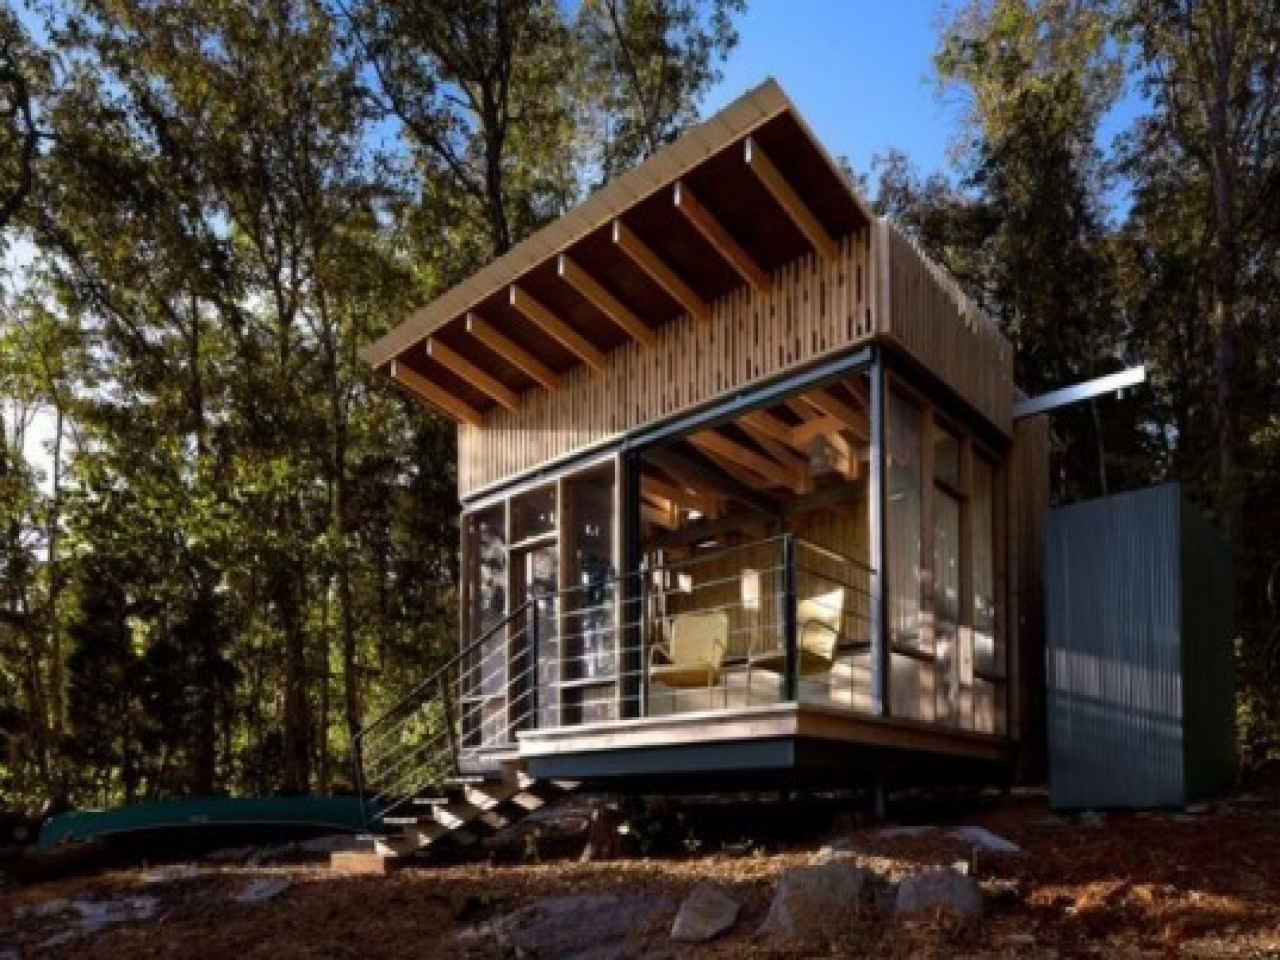 Off Grid Cabin Designs Living Off The Grid Cabin Micro Cottages Plans